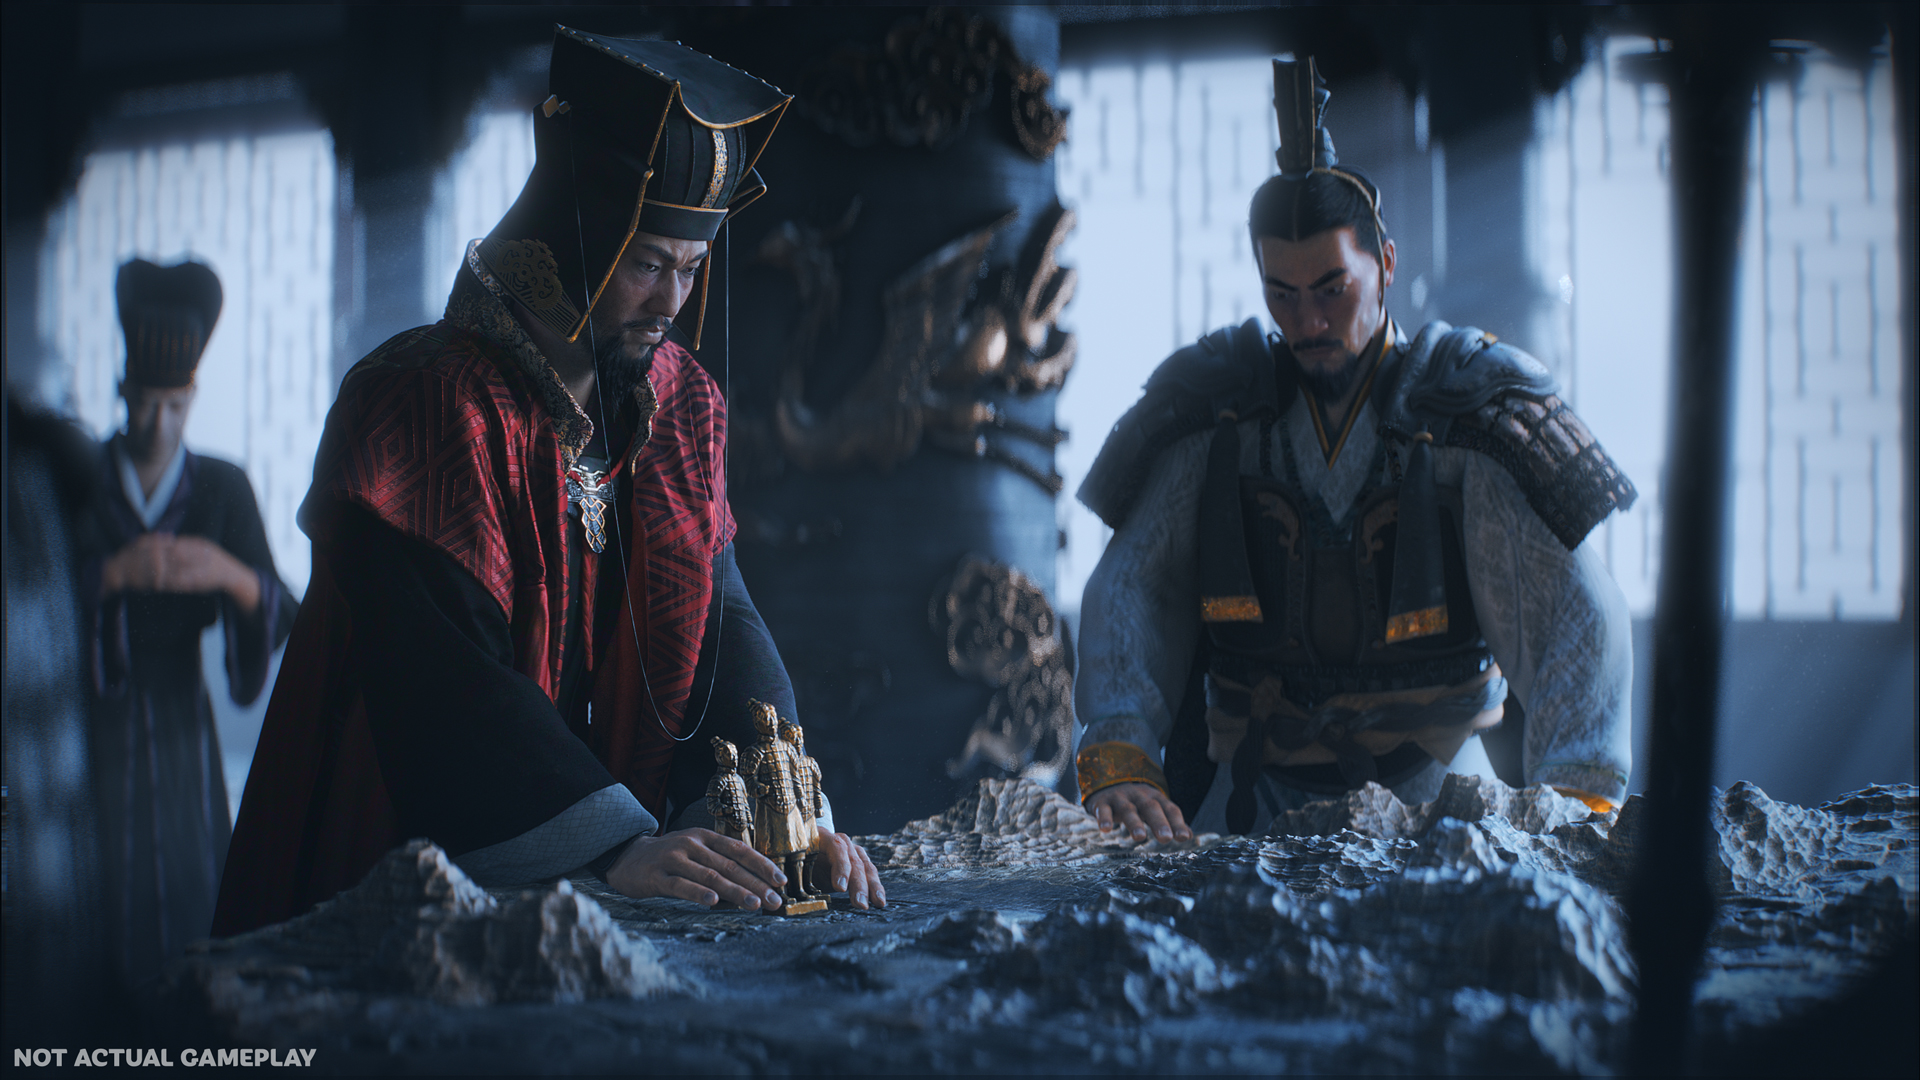 Sabotage and espionage in Total War Three Kingdoms